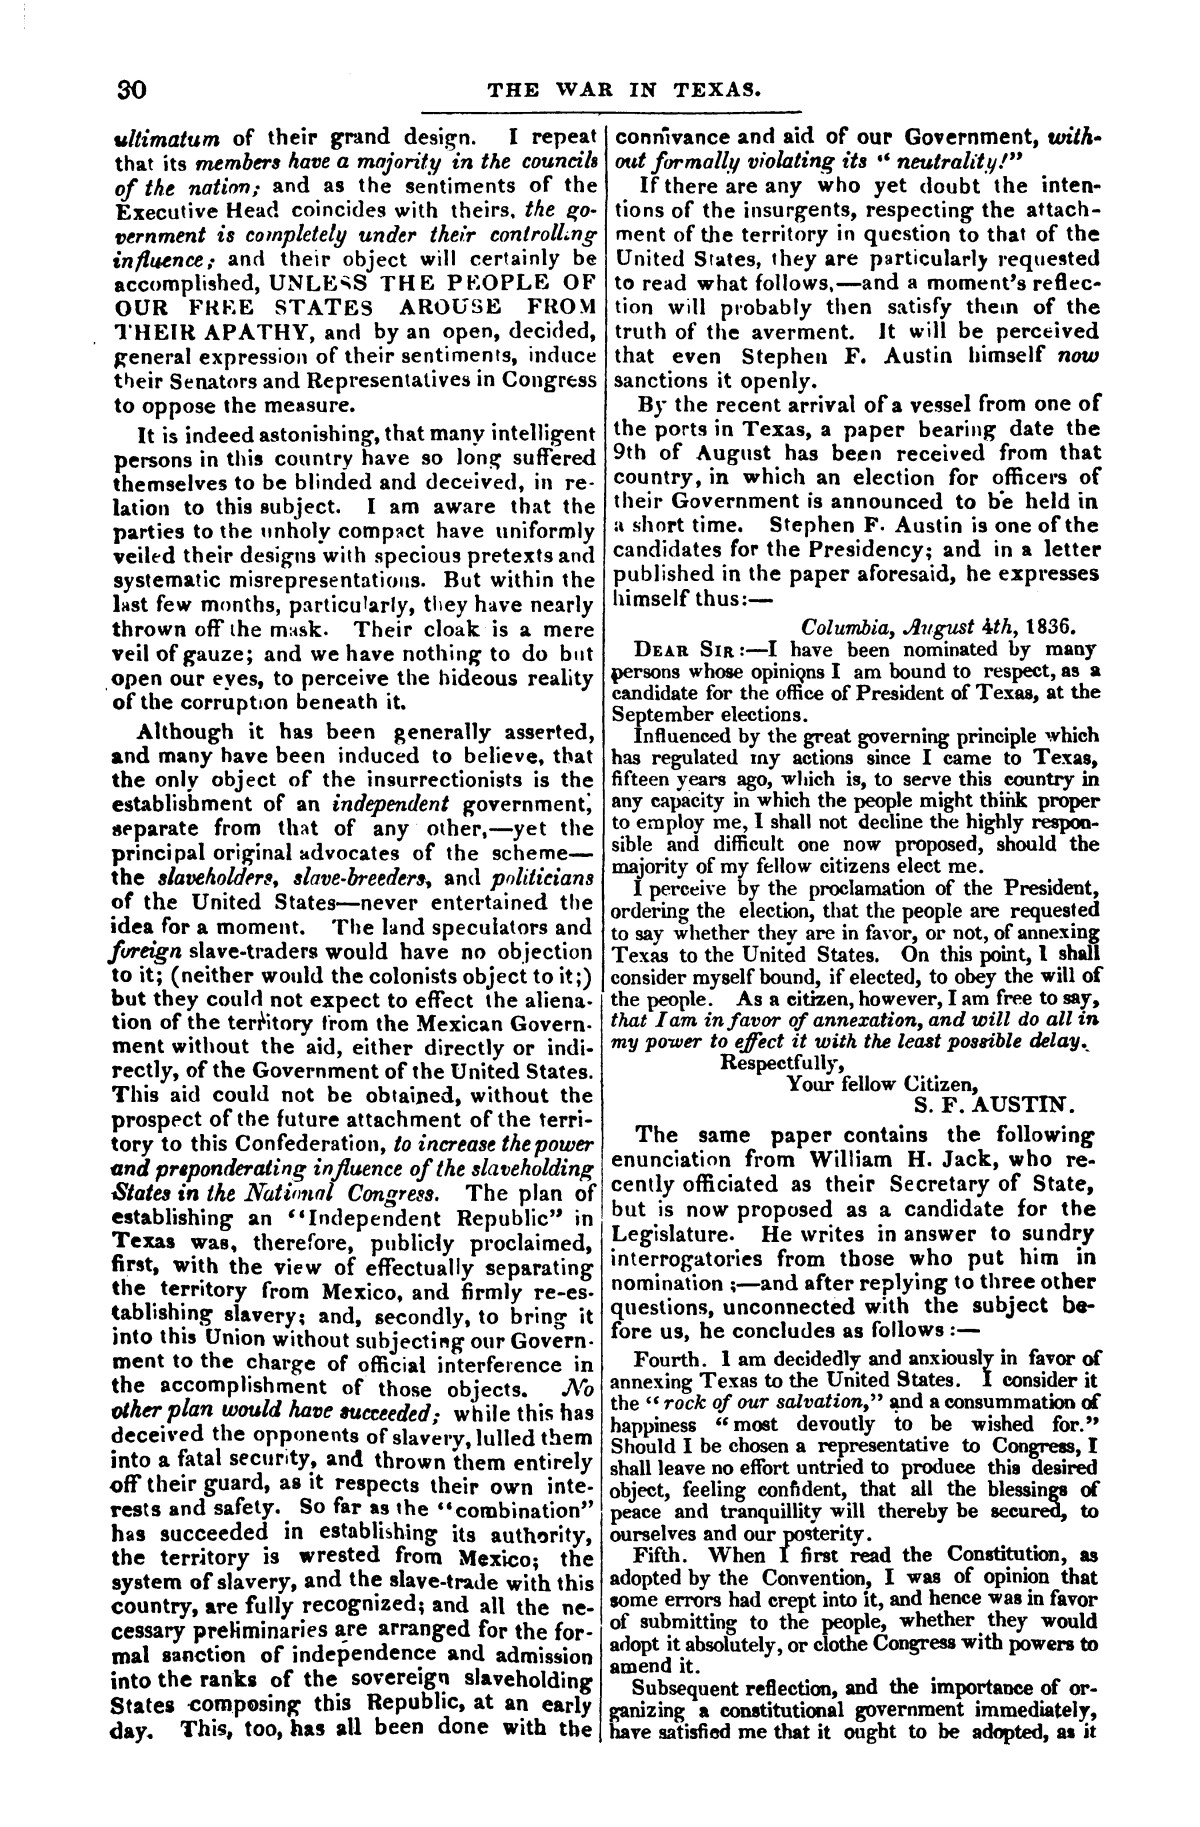 The war in Texas; a review of facts and circumstances, showing that this contest is a crusade against Mexico, set on foot by slaveholders, land speculators, & c. in order to re-establish, extend, and perpetuate the system of slavery and the slave trade.                                                                                                      [Sequence #]: 30 of 64